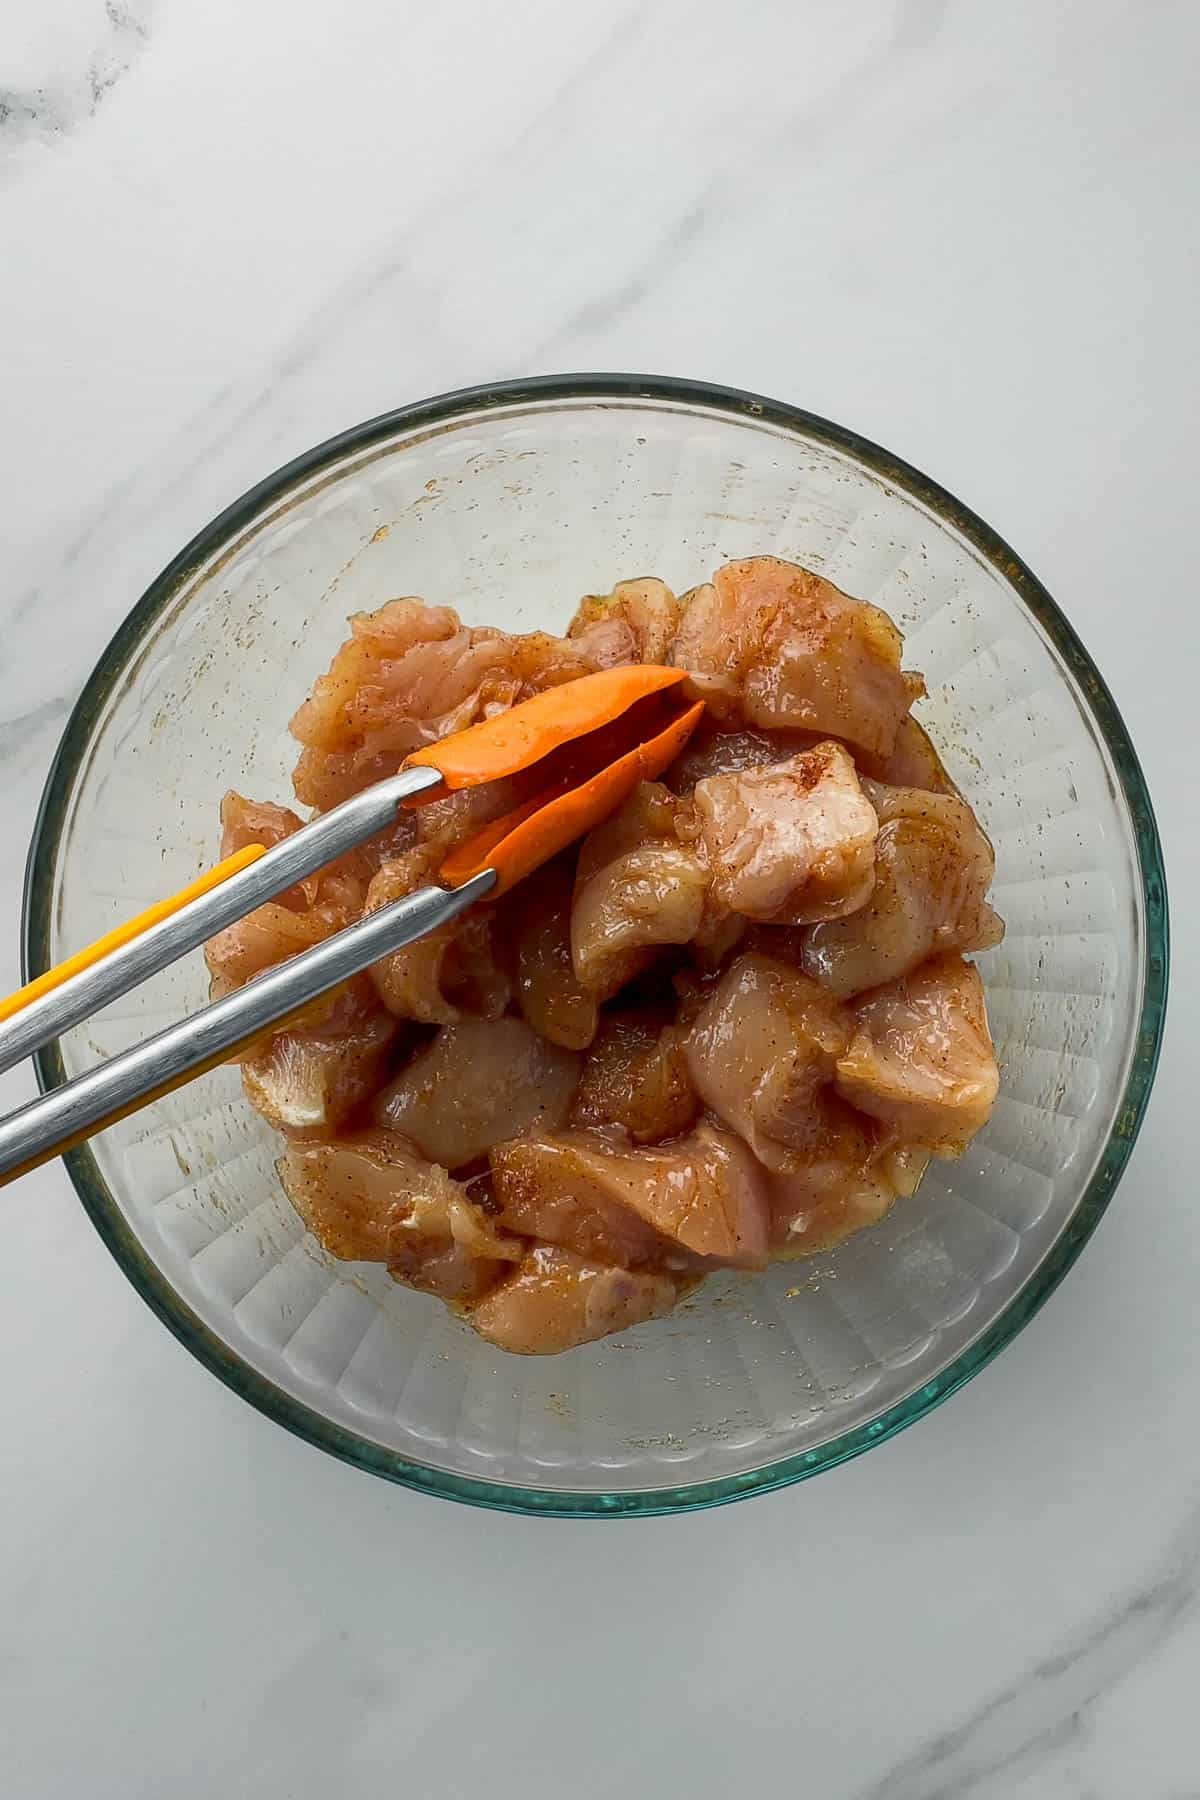 raw chicken mixed with rotisserie seasonings in a glass mixing bowl